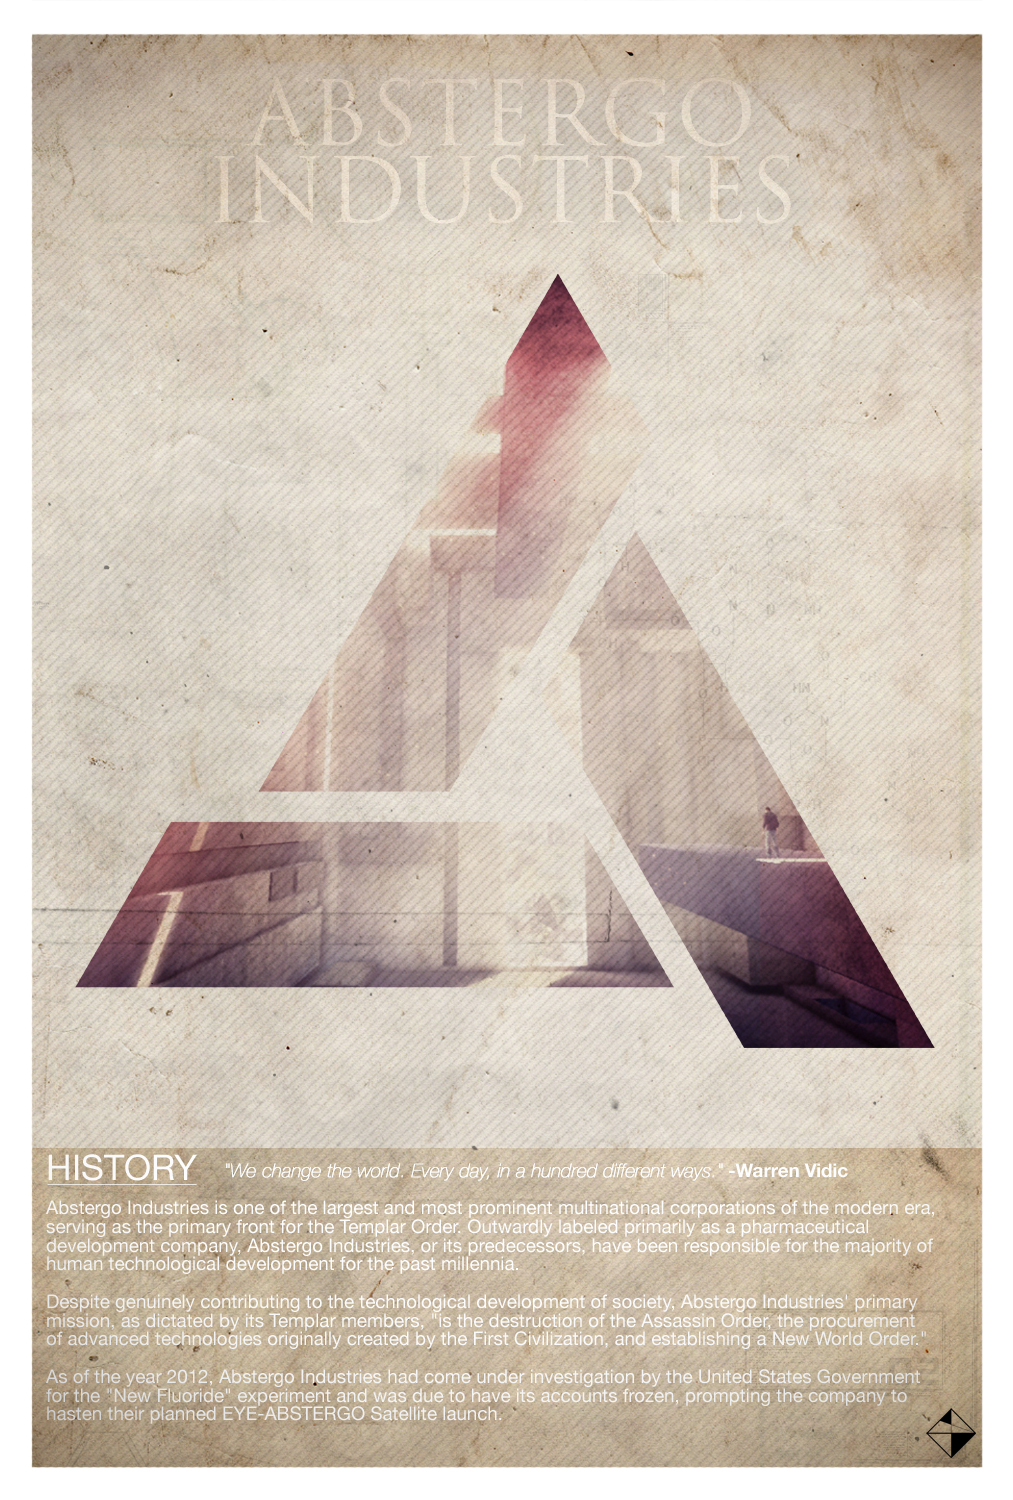 Assassin's Creed Abstergo Ind. Retro Poster by Chadski51